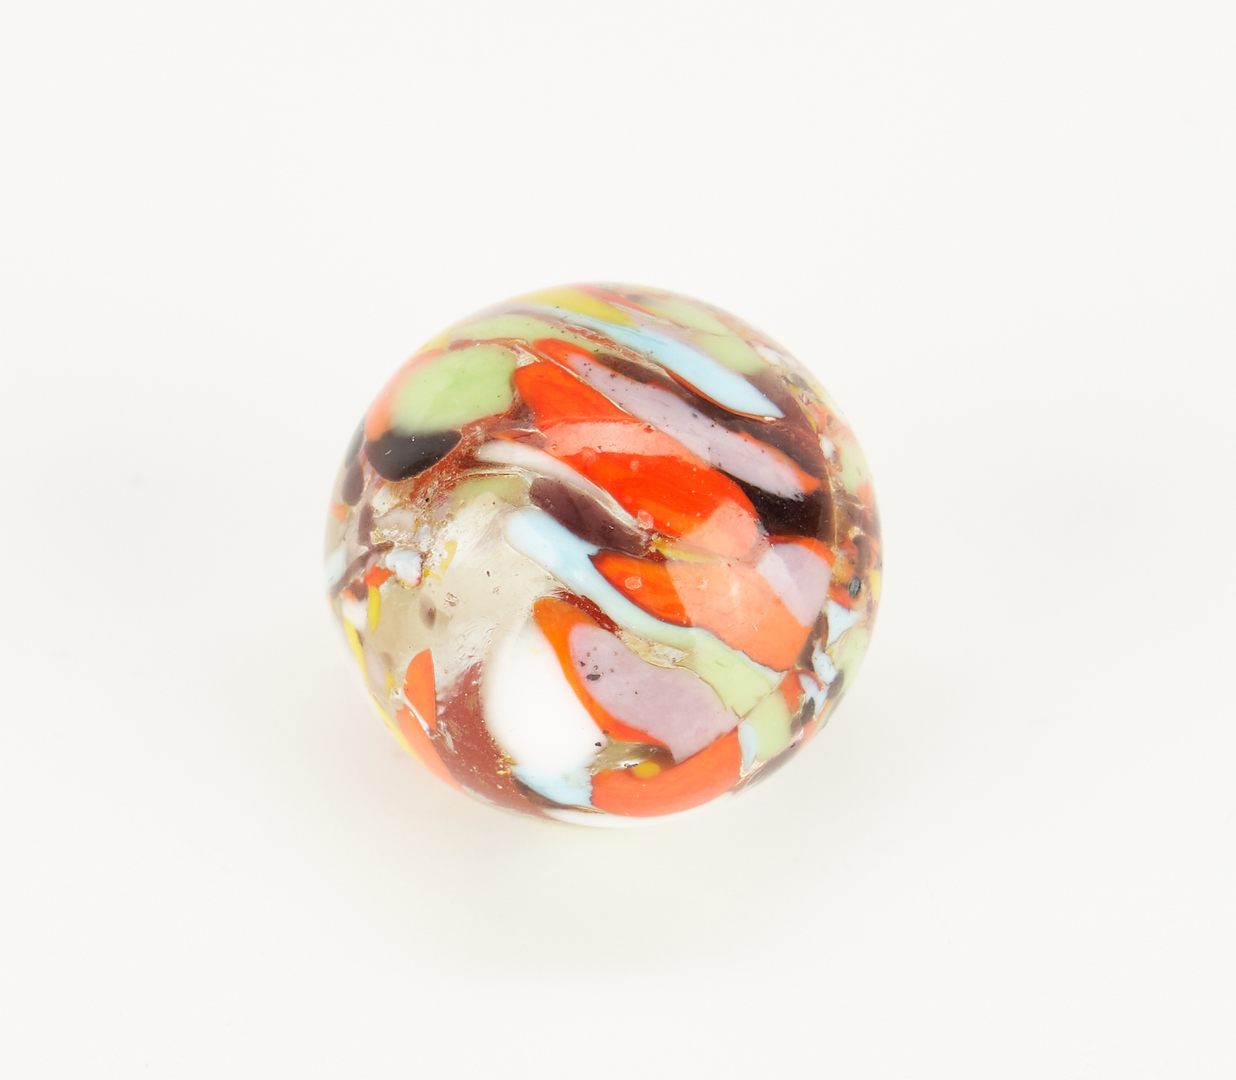 Lot 796: 4 Christensen Agate Company Guinea Marbles